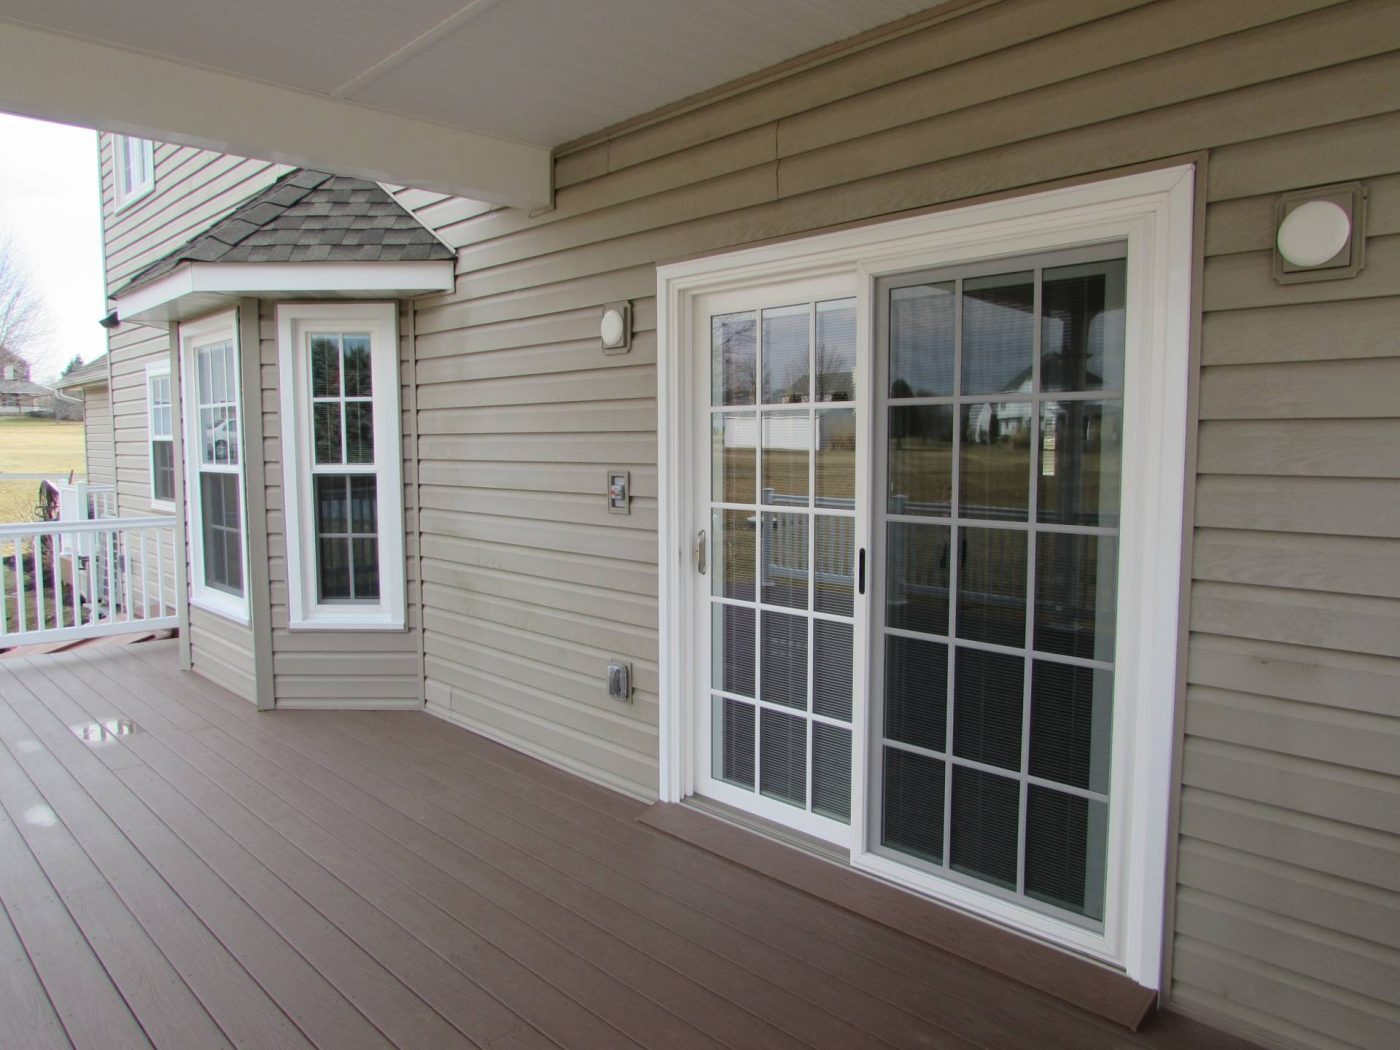 1050 #665C49 Patio Doors Choice Windows & Doors picture/photo Triple Pane Sliding Glass Doors 791400